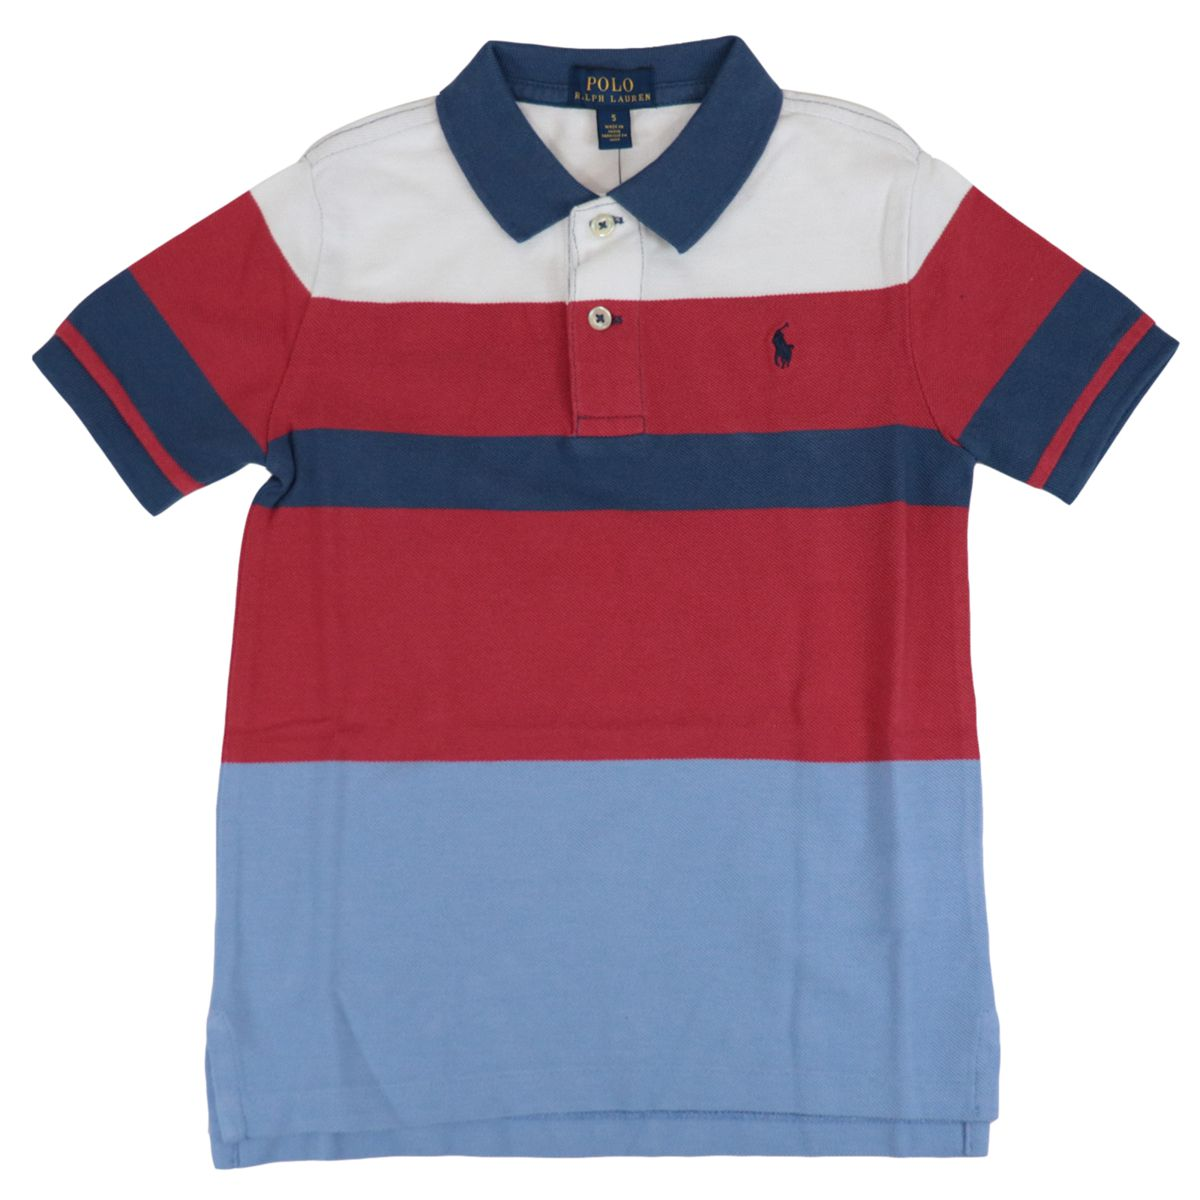 Multicolor striped cotton polo shirt with contrasting logo embroidery Red Polo Ralph Lauren